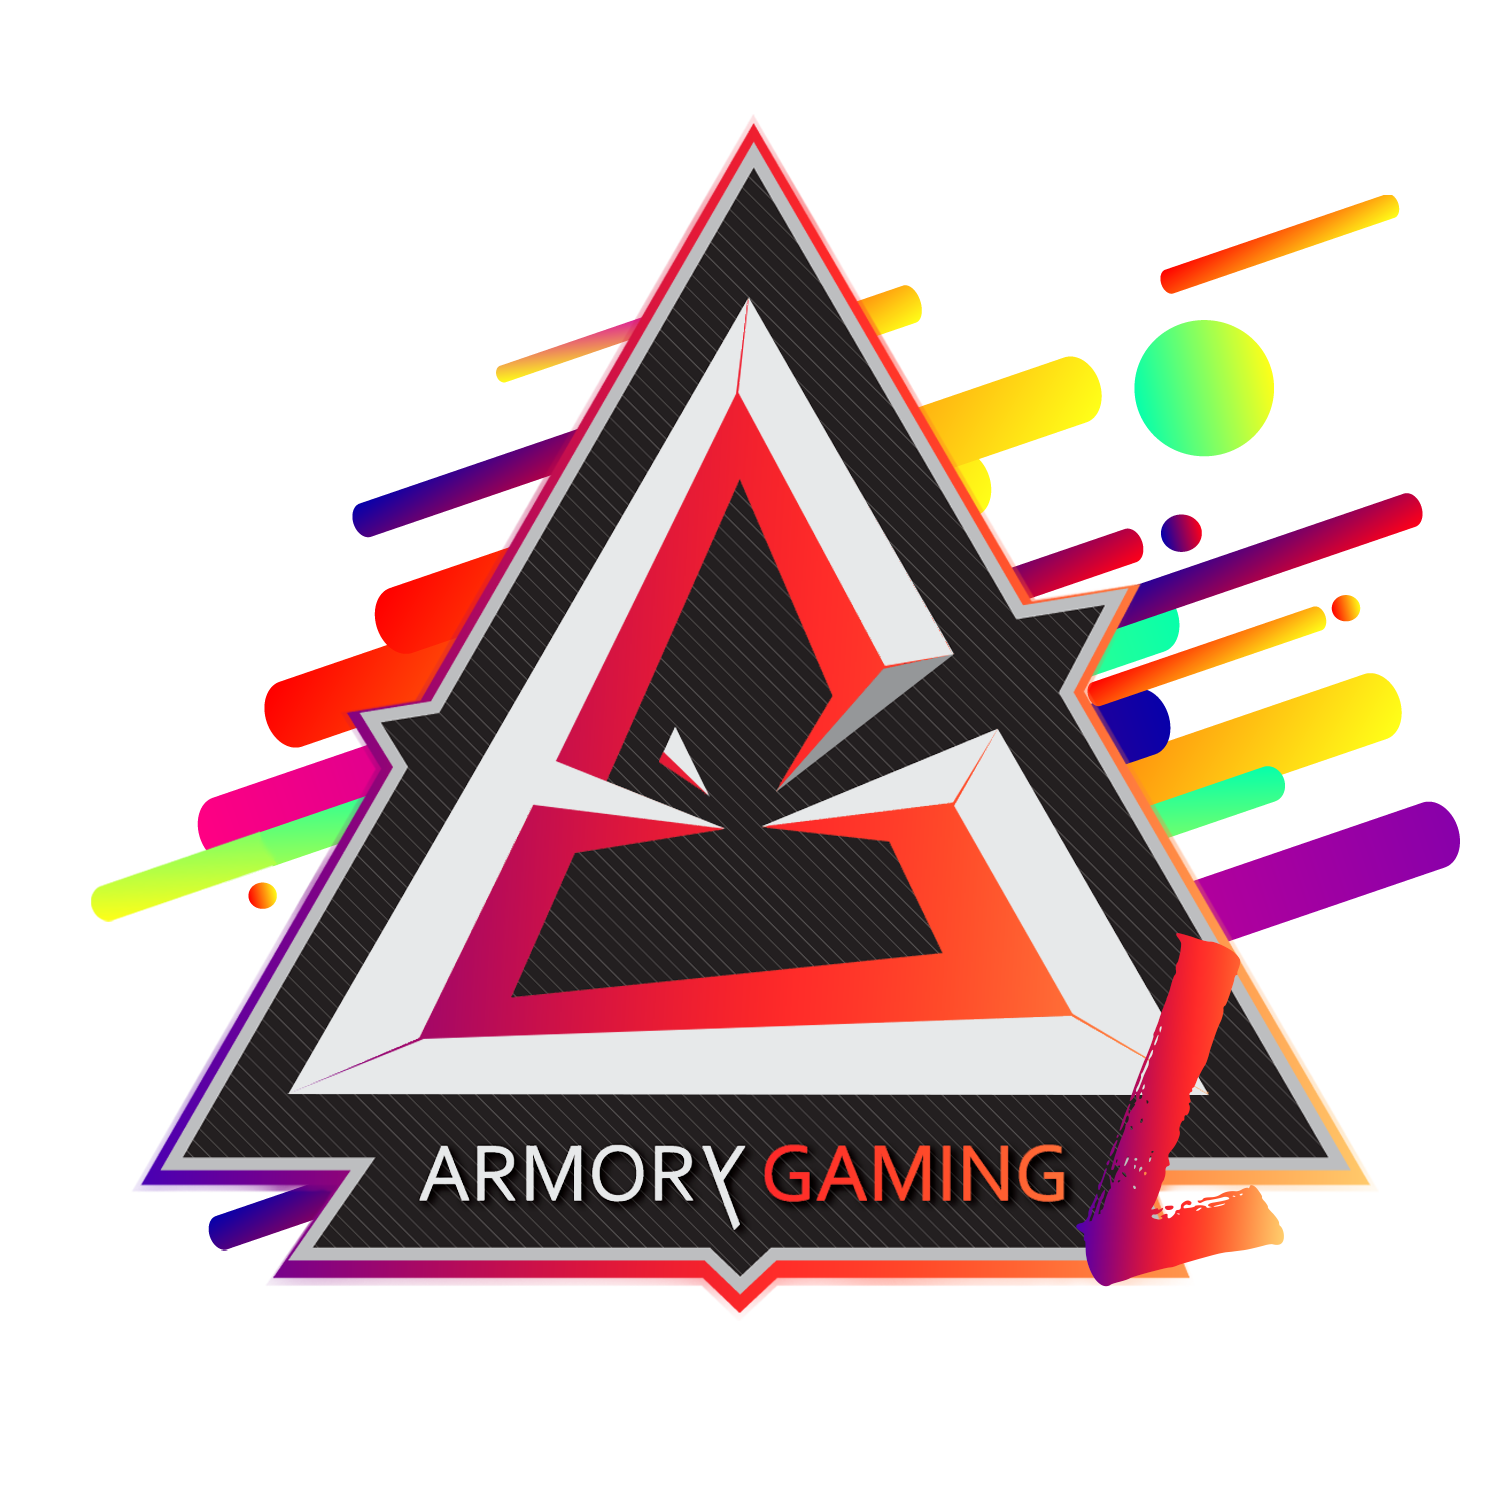 Armory Gaming Lady